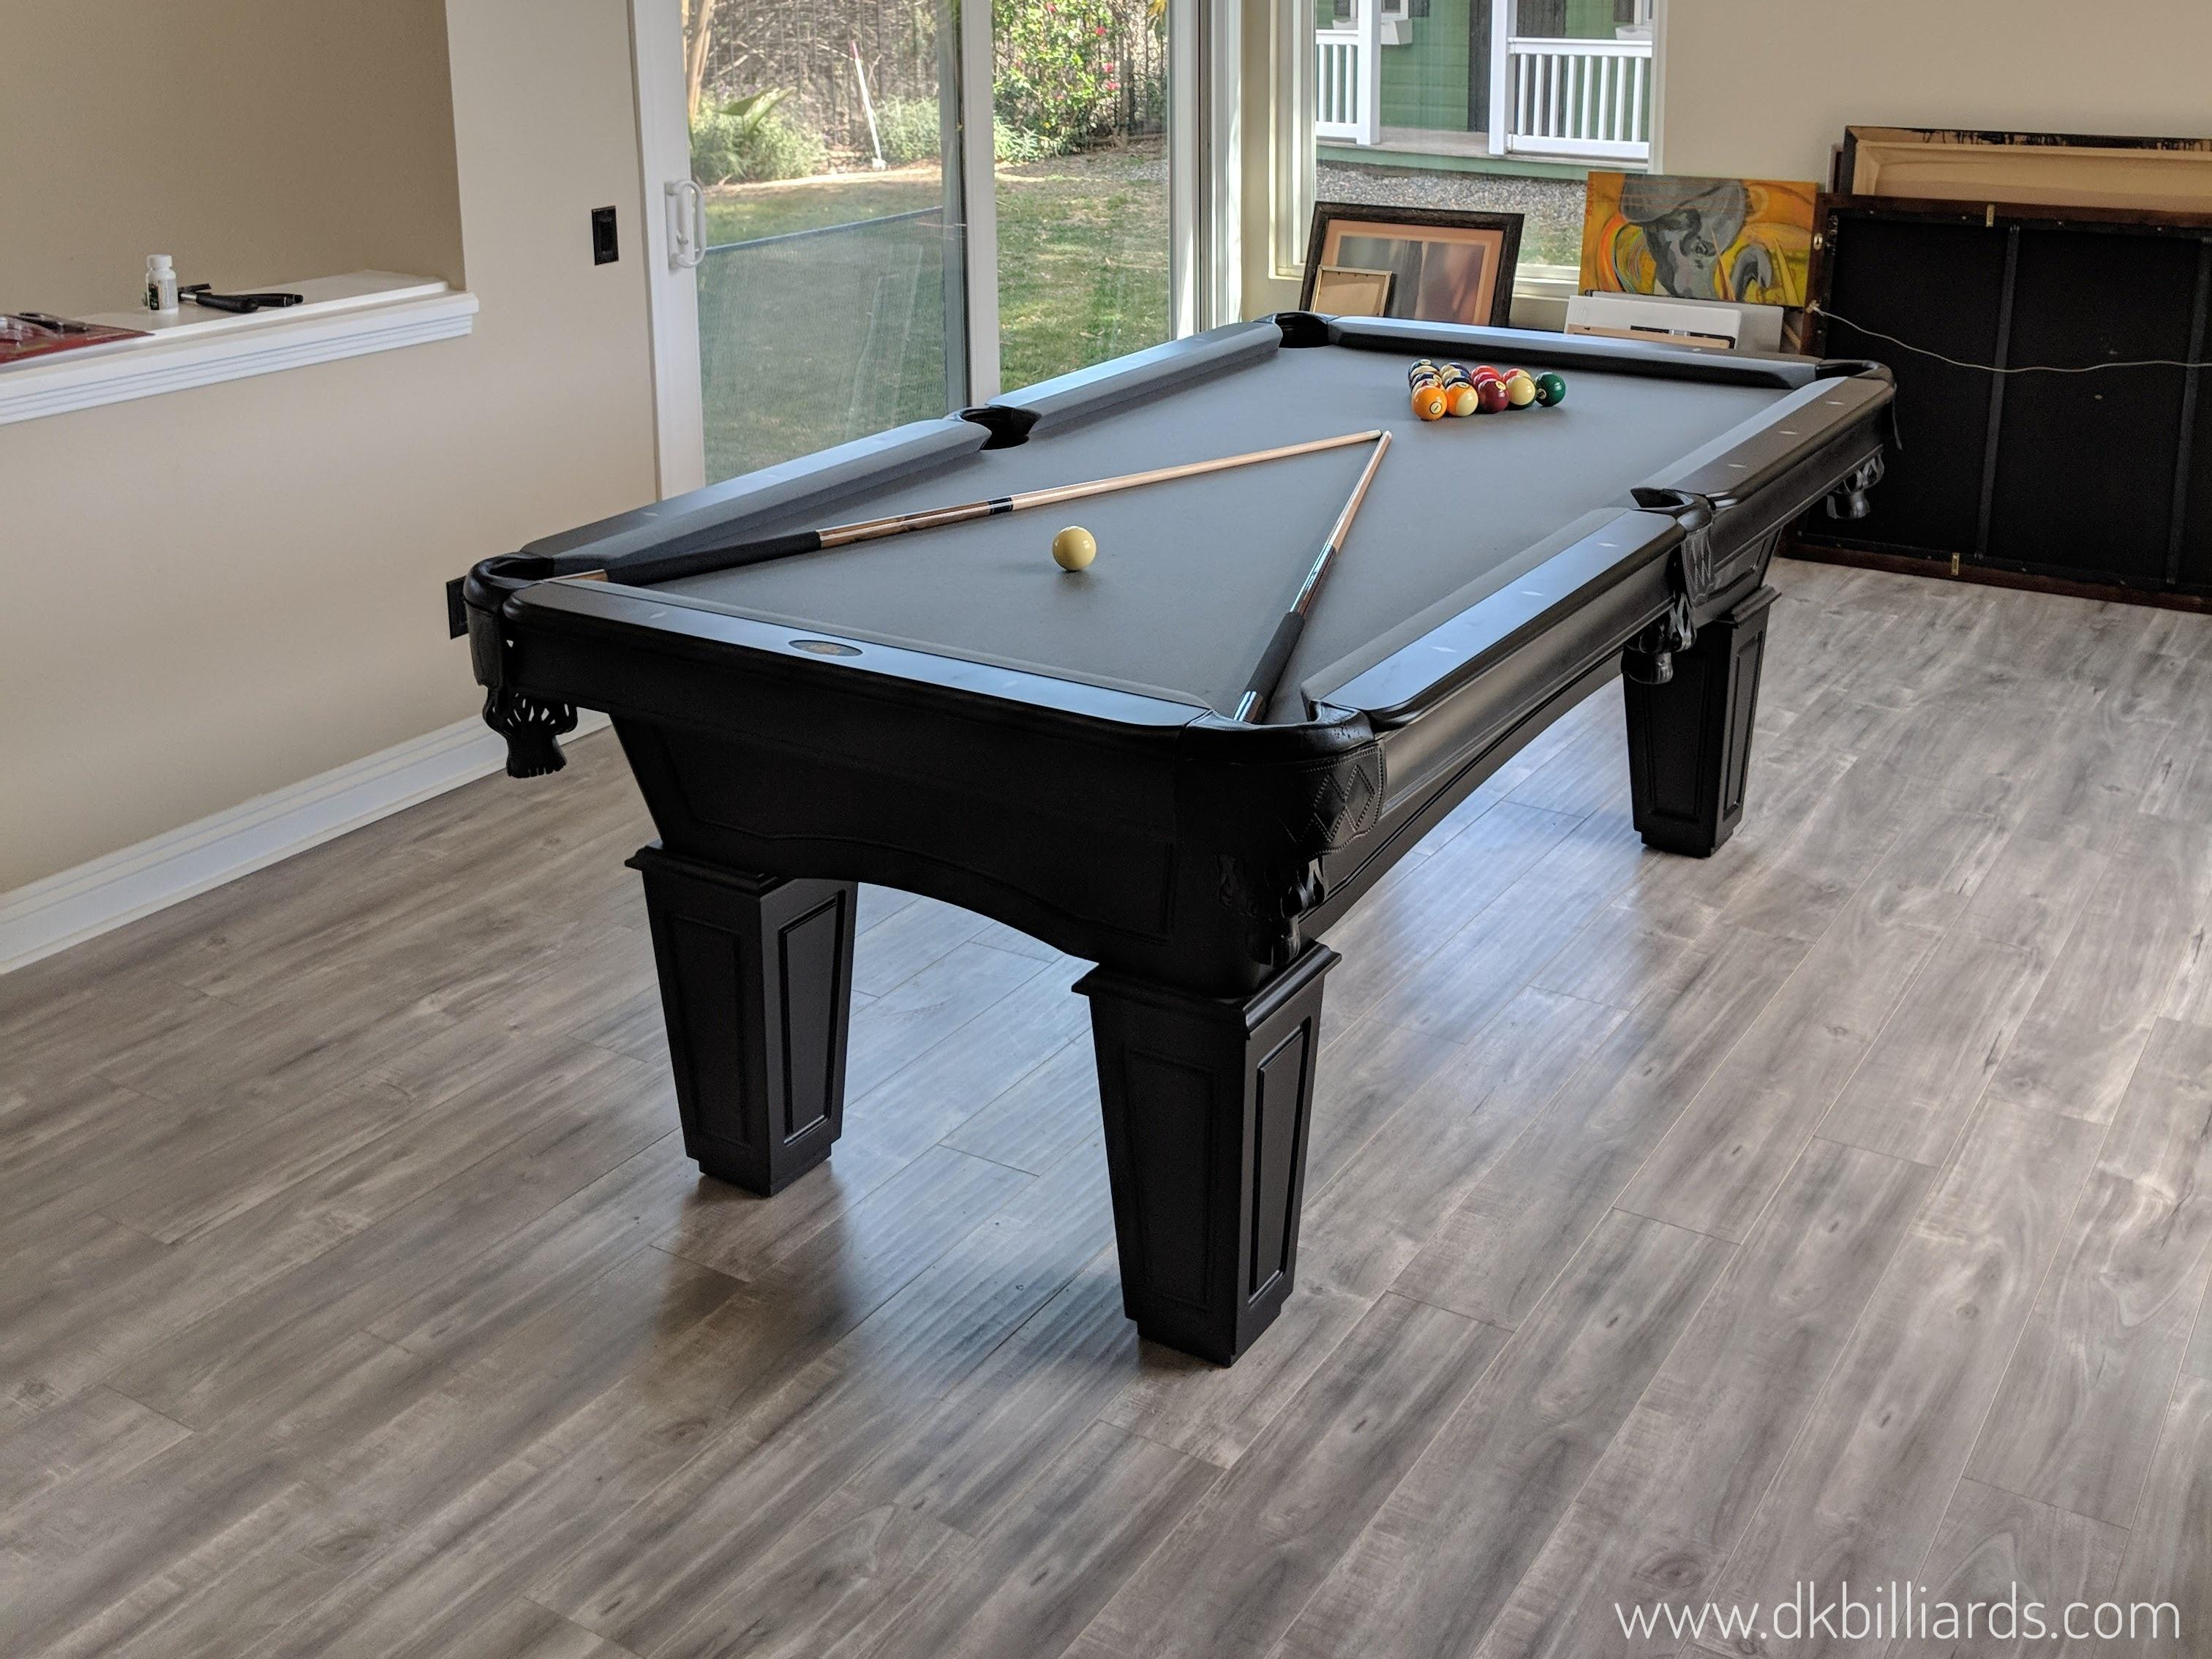 7 foot pool table Archives - DK Billiard Service, Pool Tables For ...